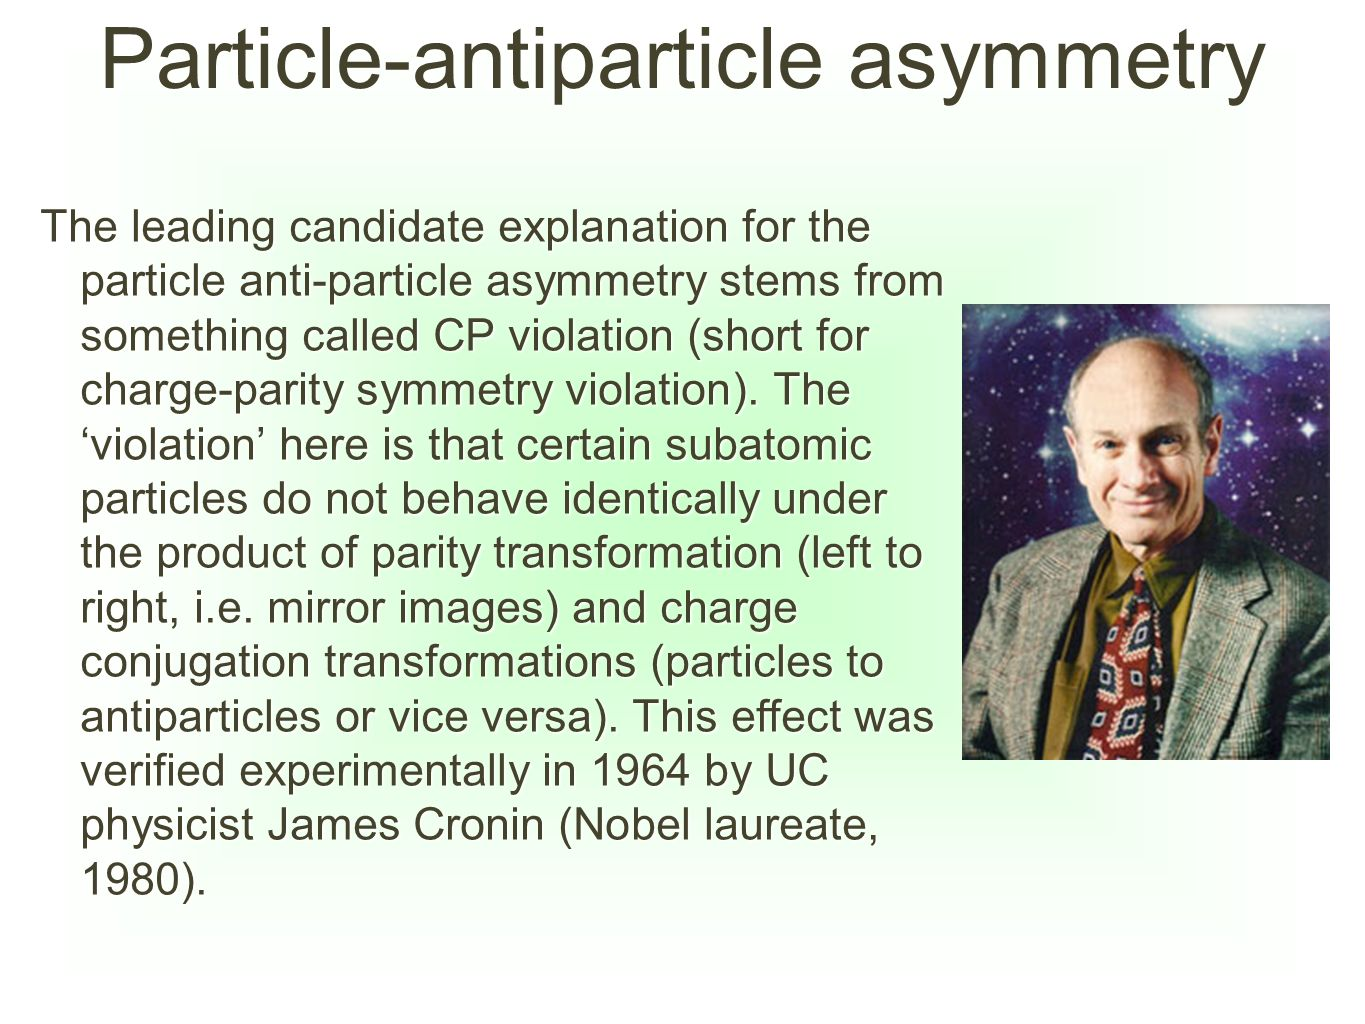 Particle-antiparticle asymmetry